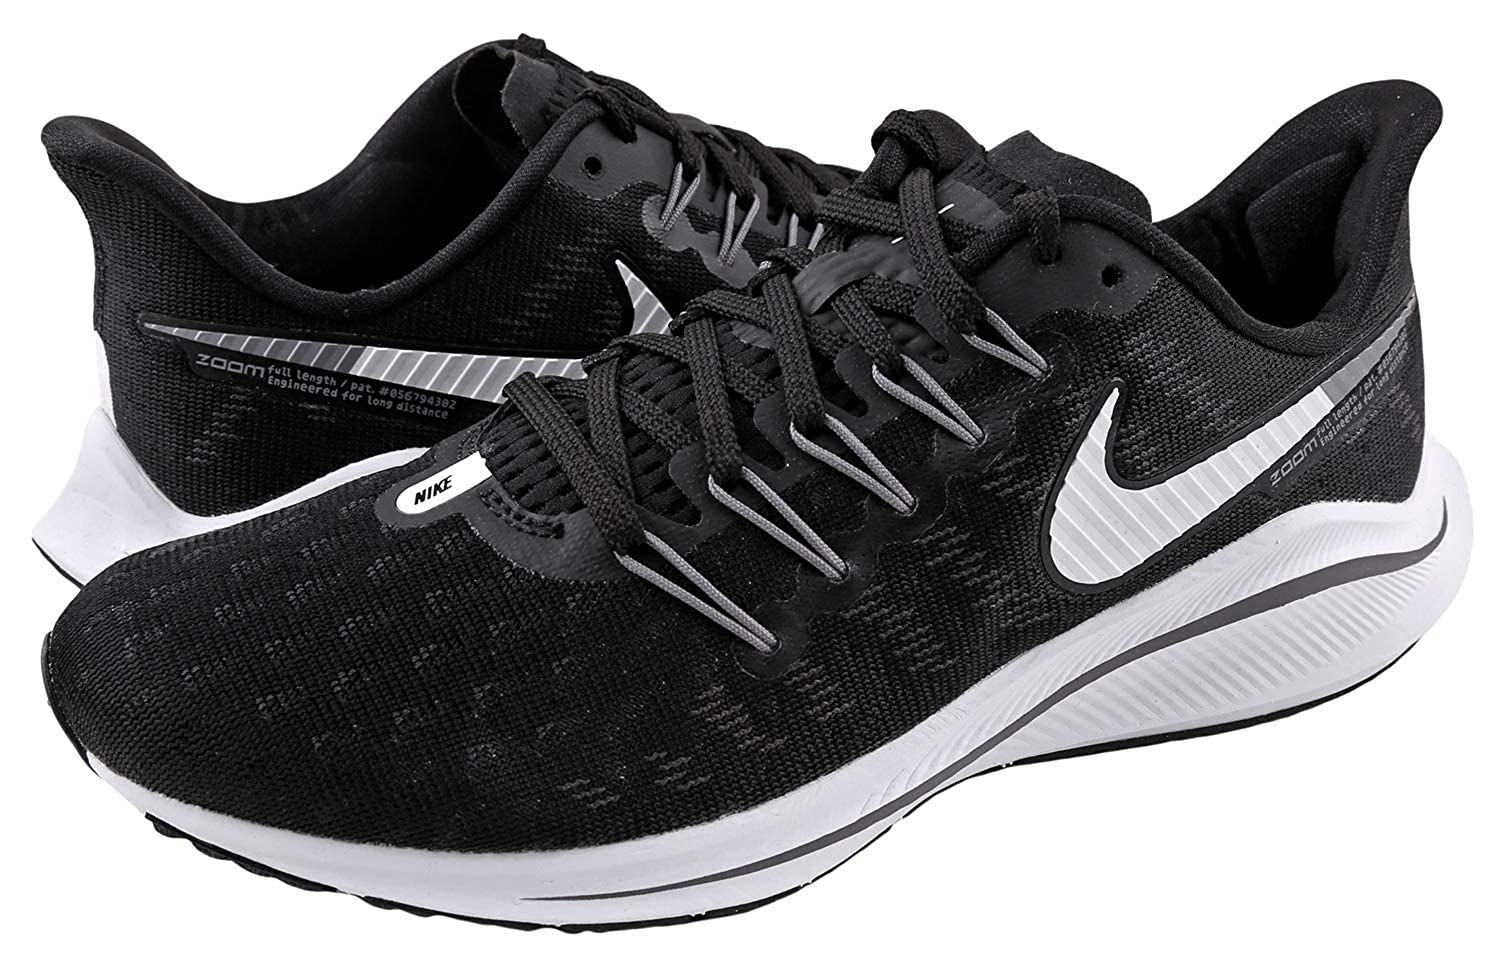 Vomero Air 14Chaussures Nike Wmns Zoom f6g7Yyb